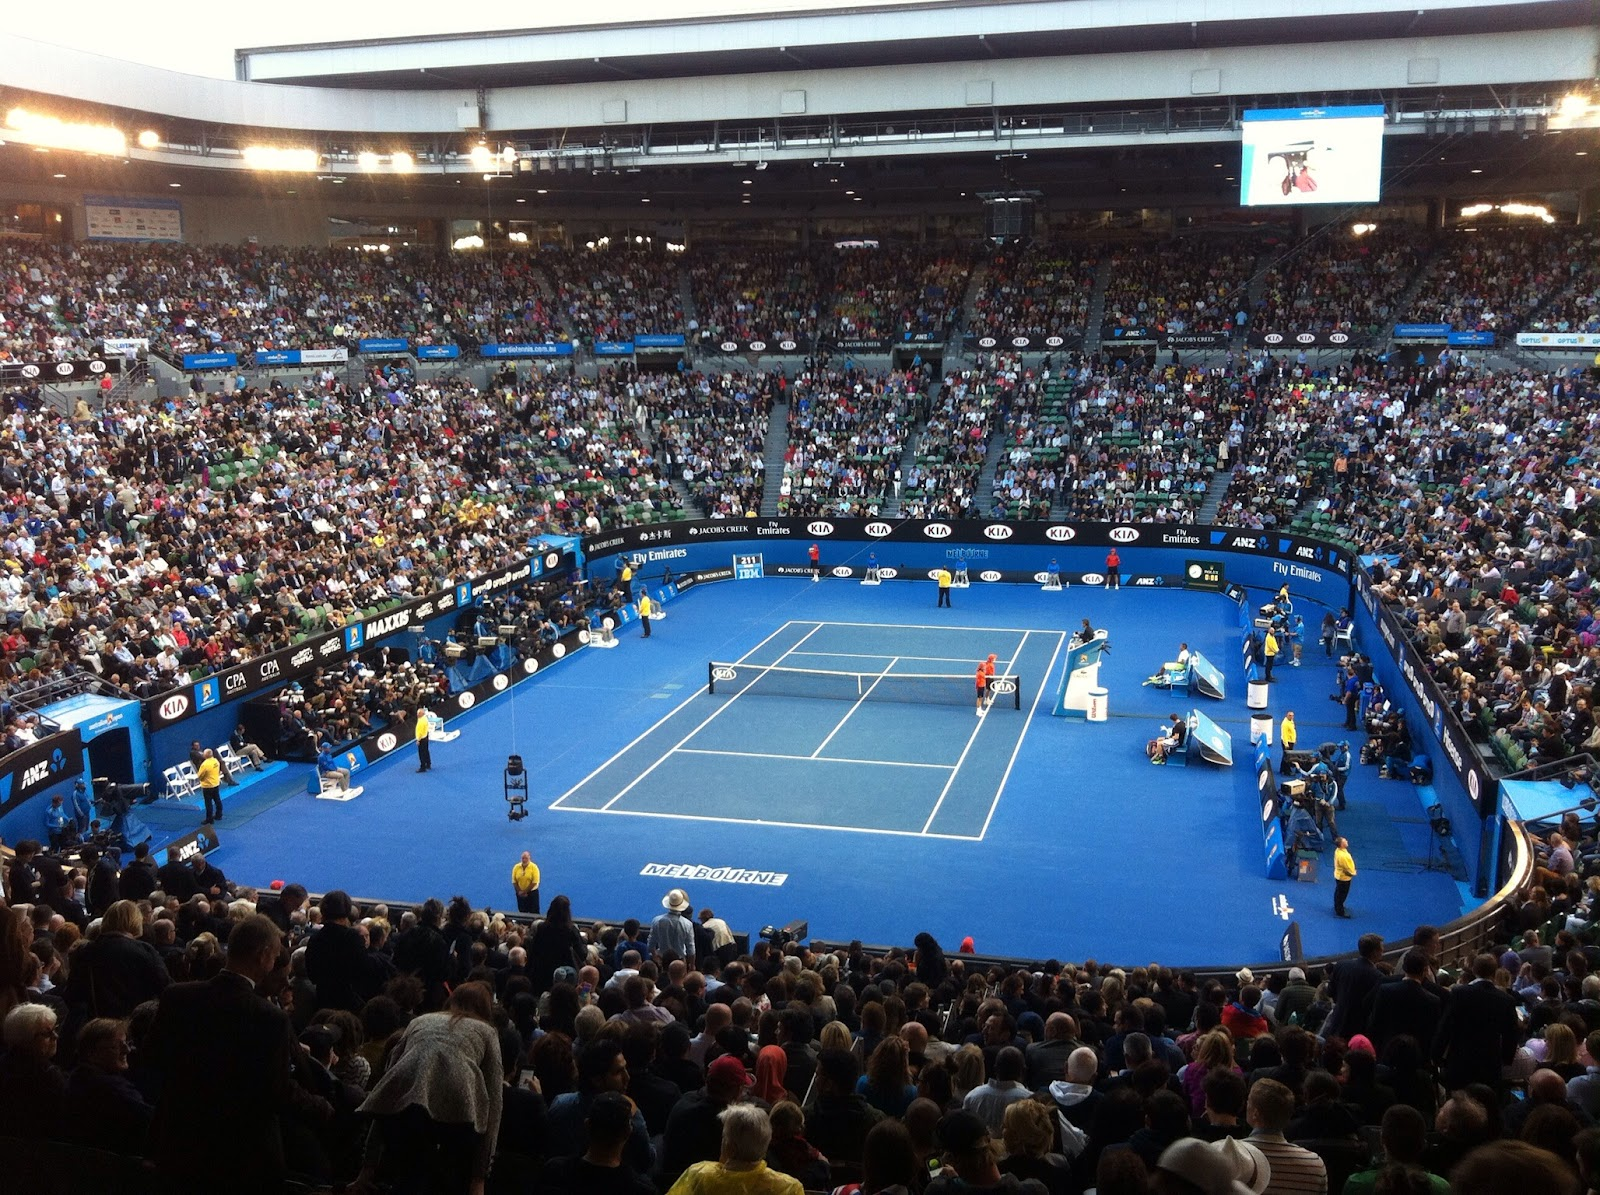 https://upload.wikimedia.org/wikipedia/commons/7/77/Rod_Laver_Arena_2015_Australian_Open.jpg